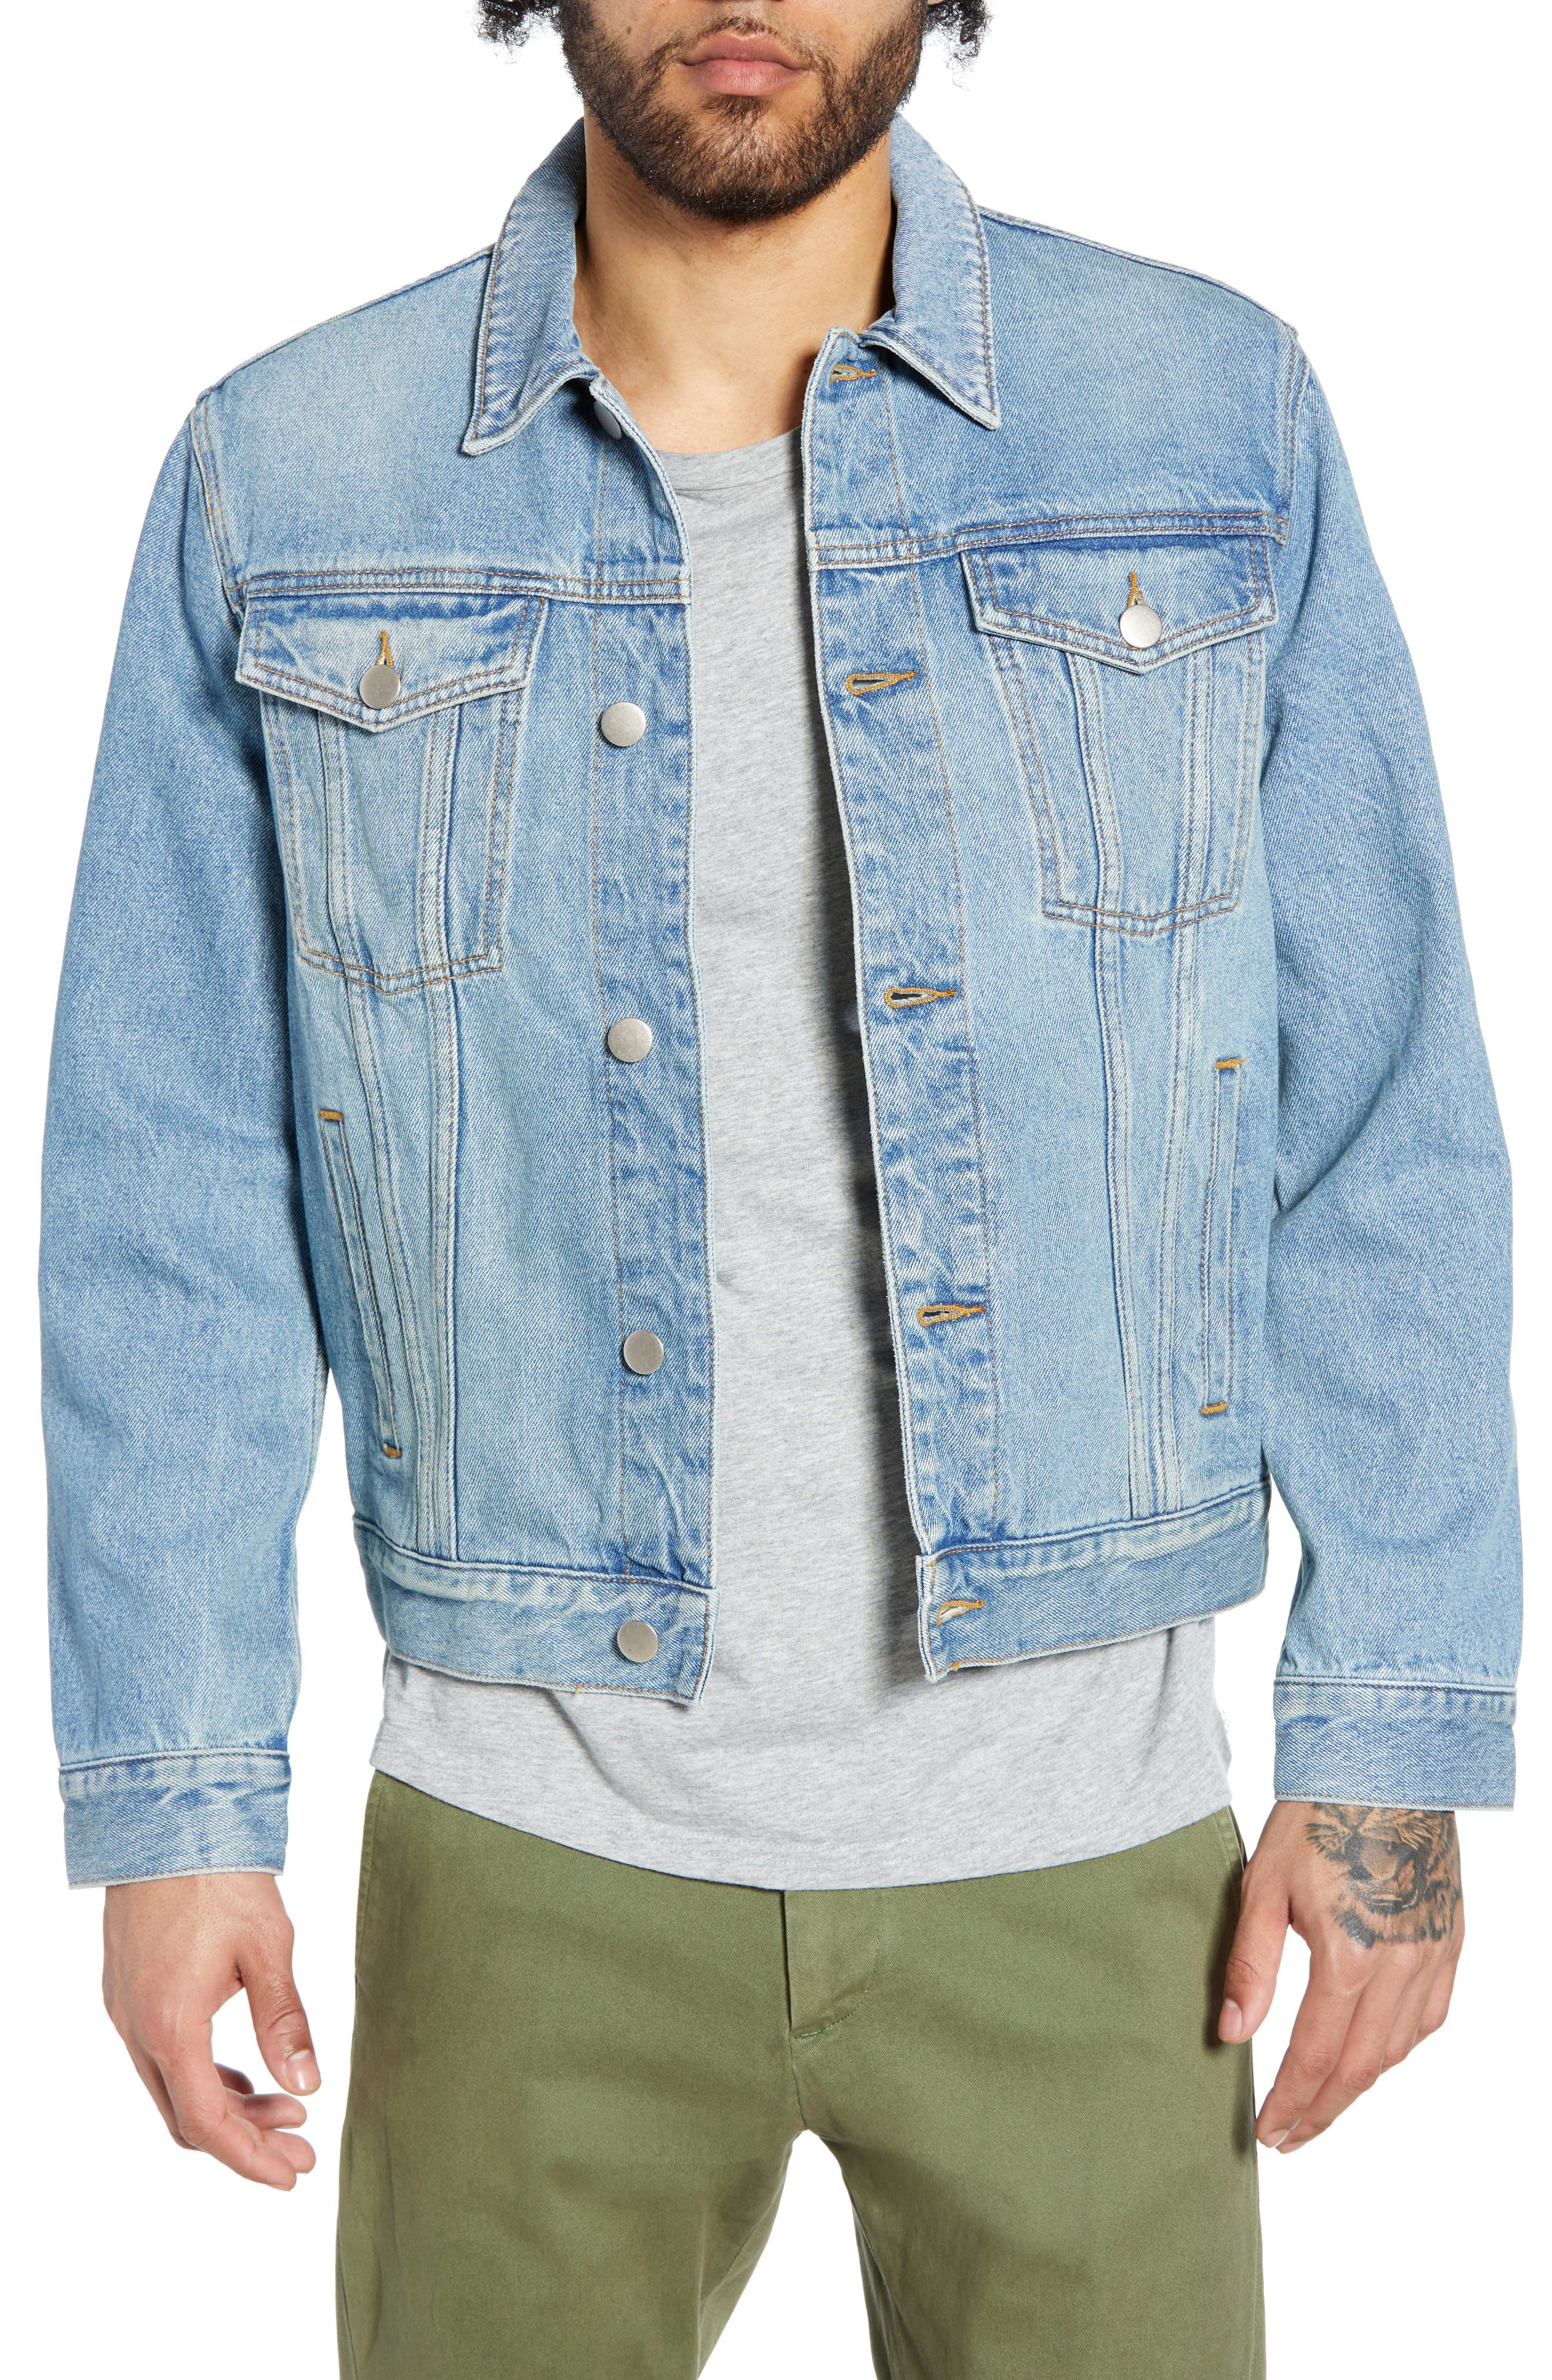 THE RAIL, Denim Jacket, Main thumbnail 1, color, BLUE TREK WASH